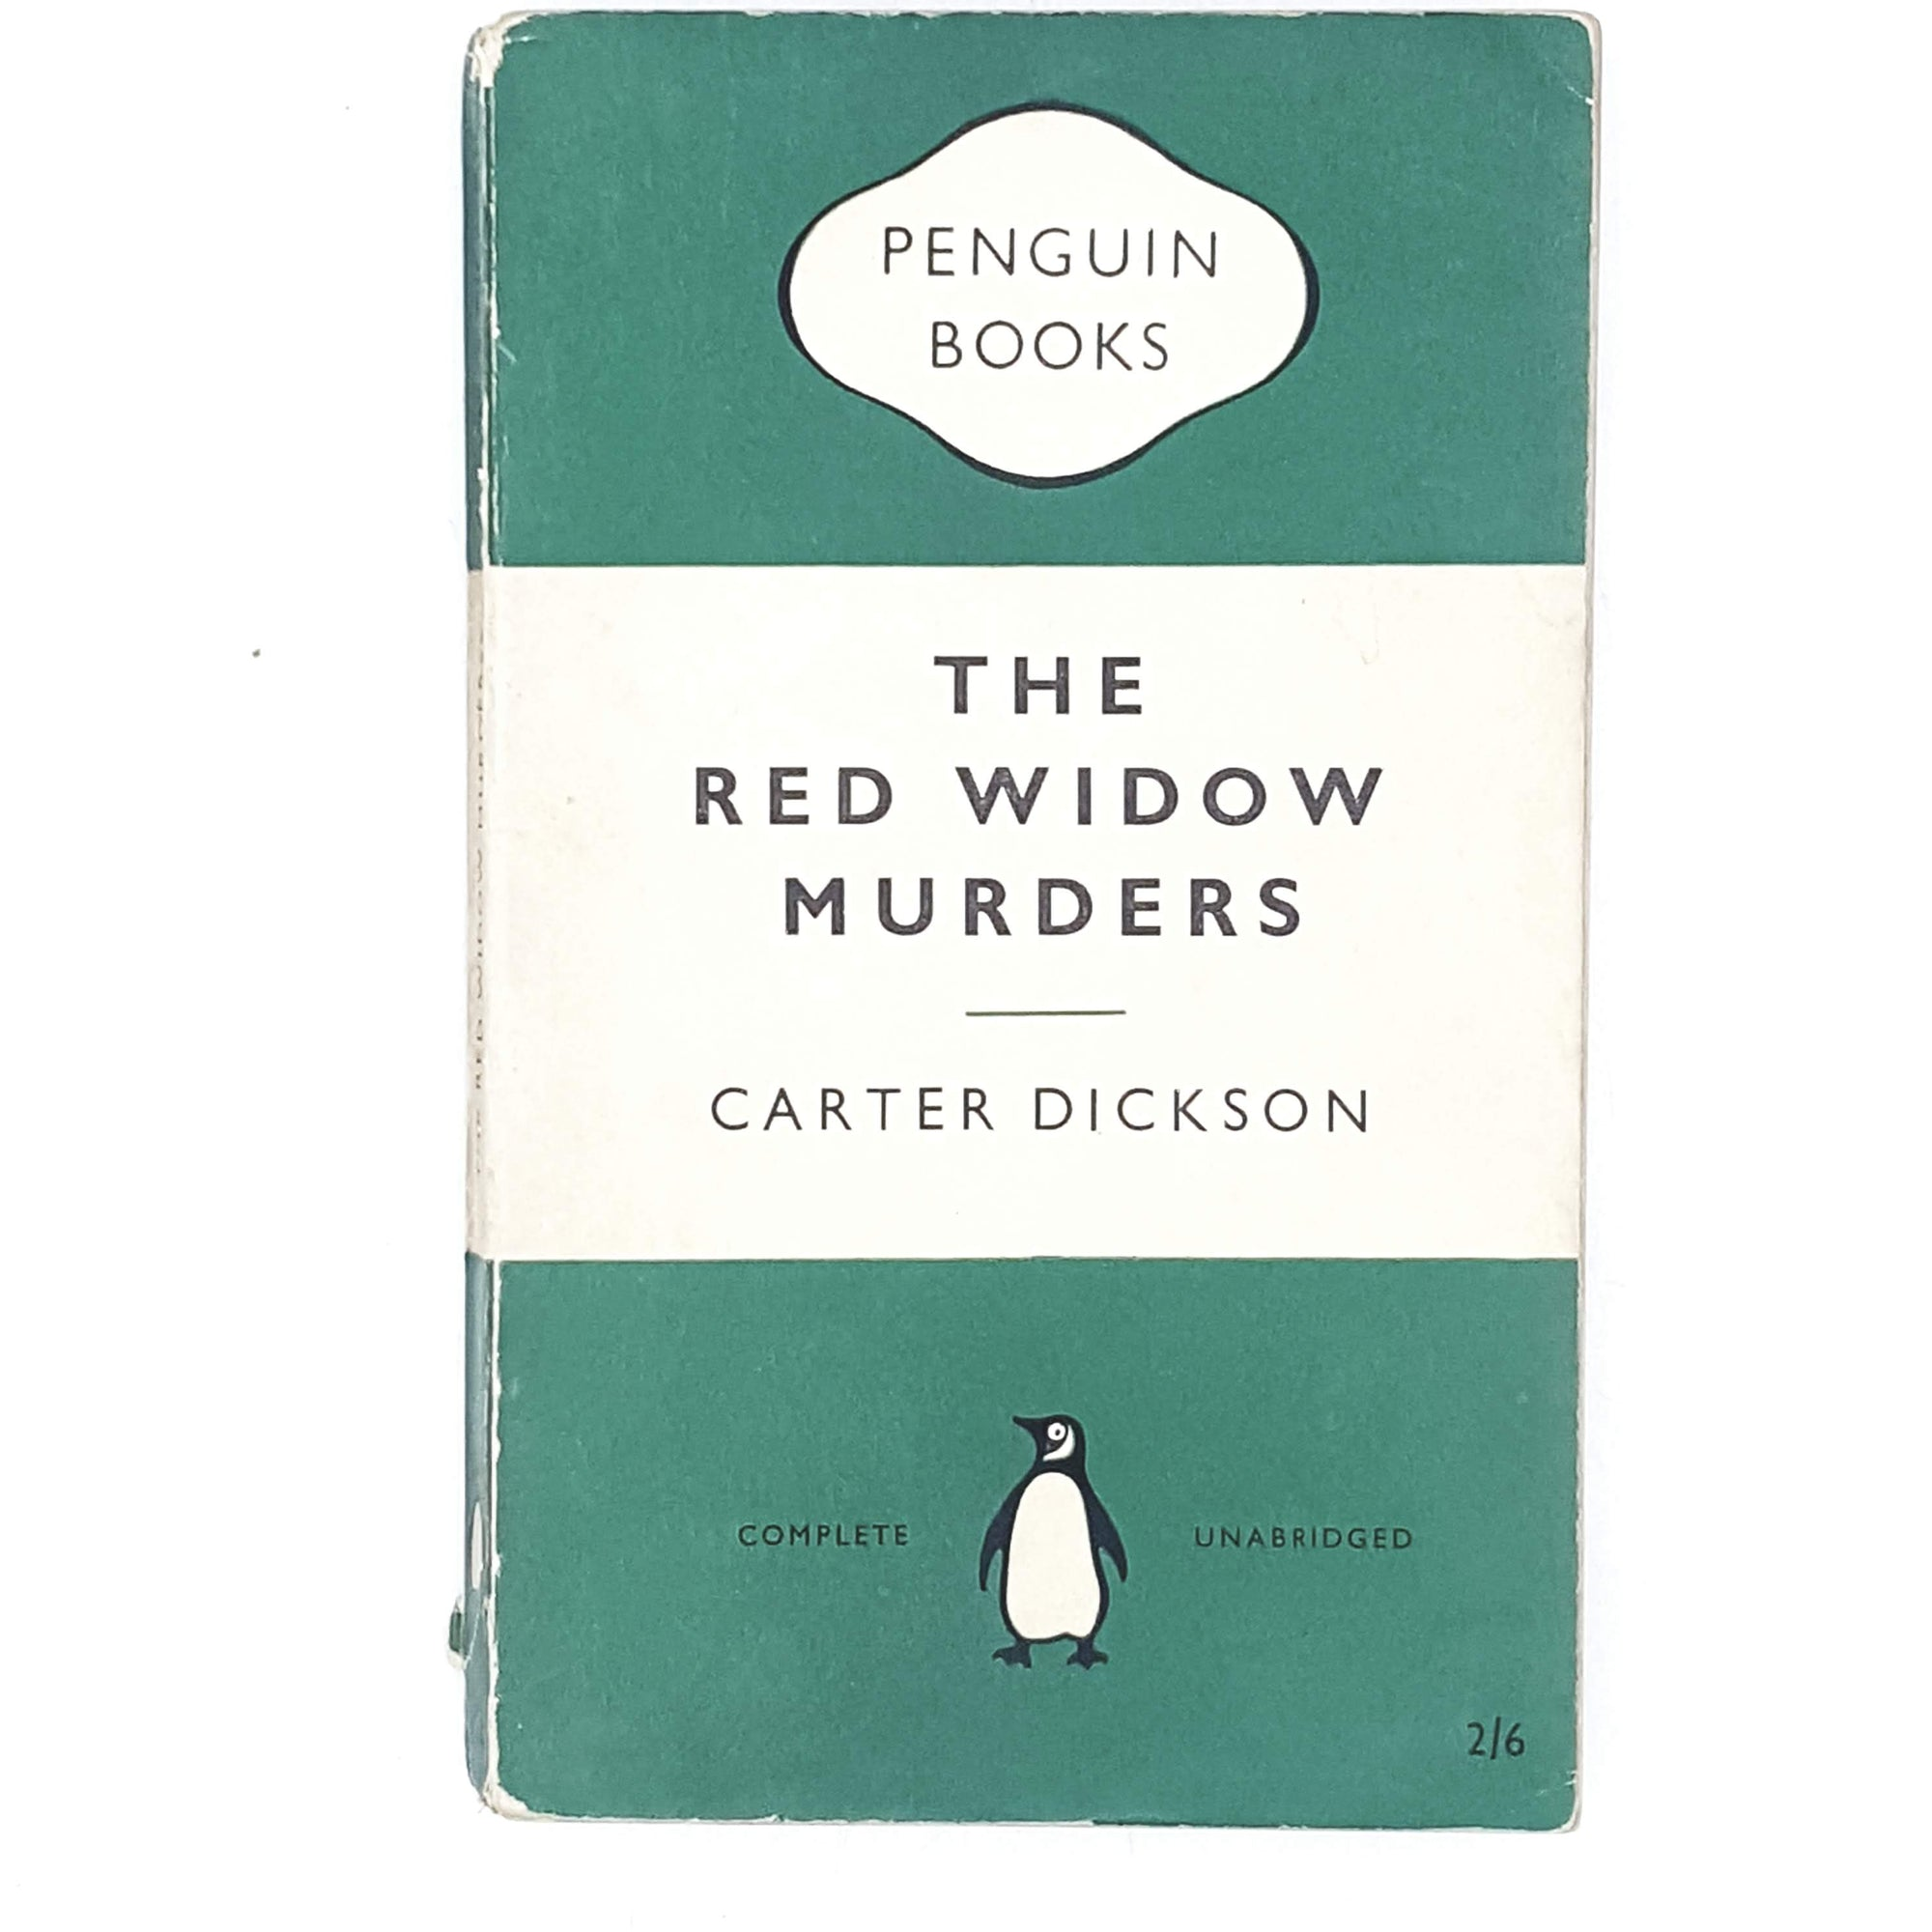 The Red Widow Murders by Carter Dickson 1955